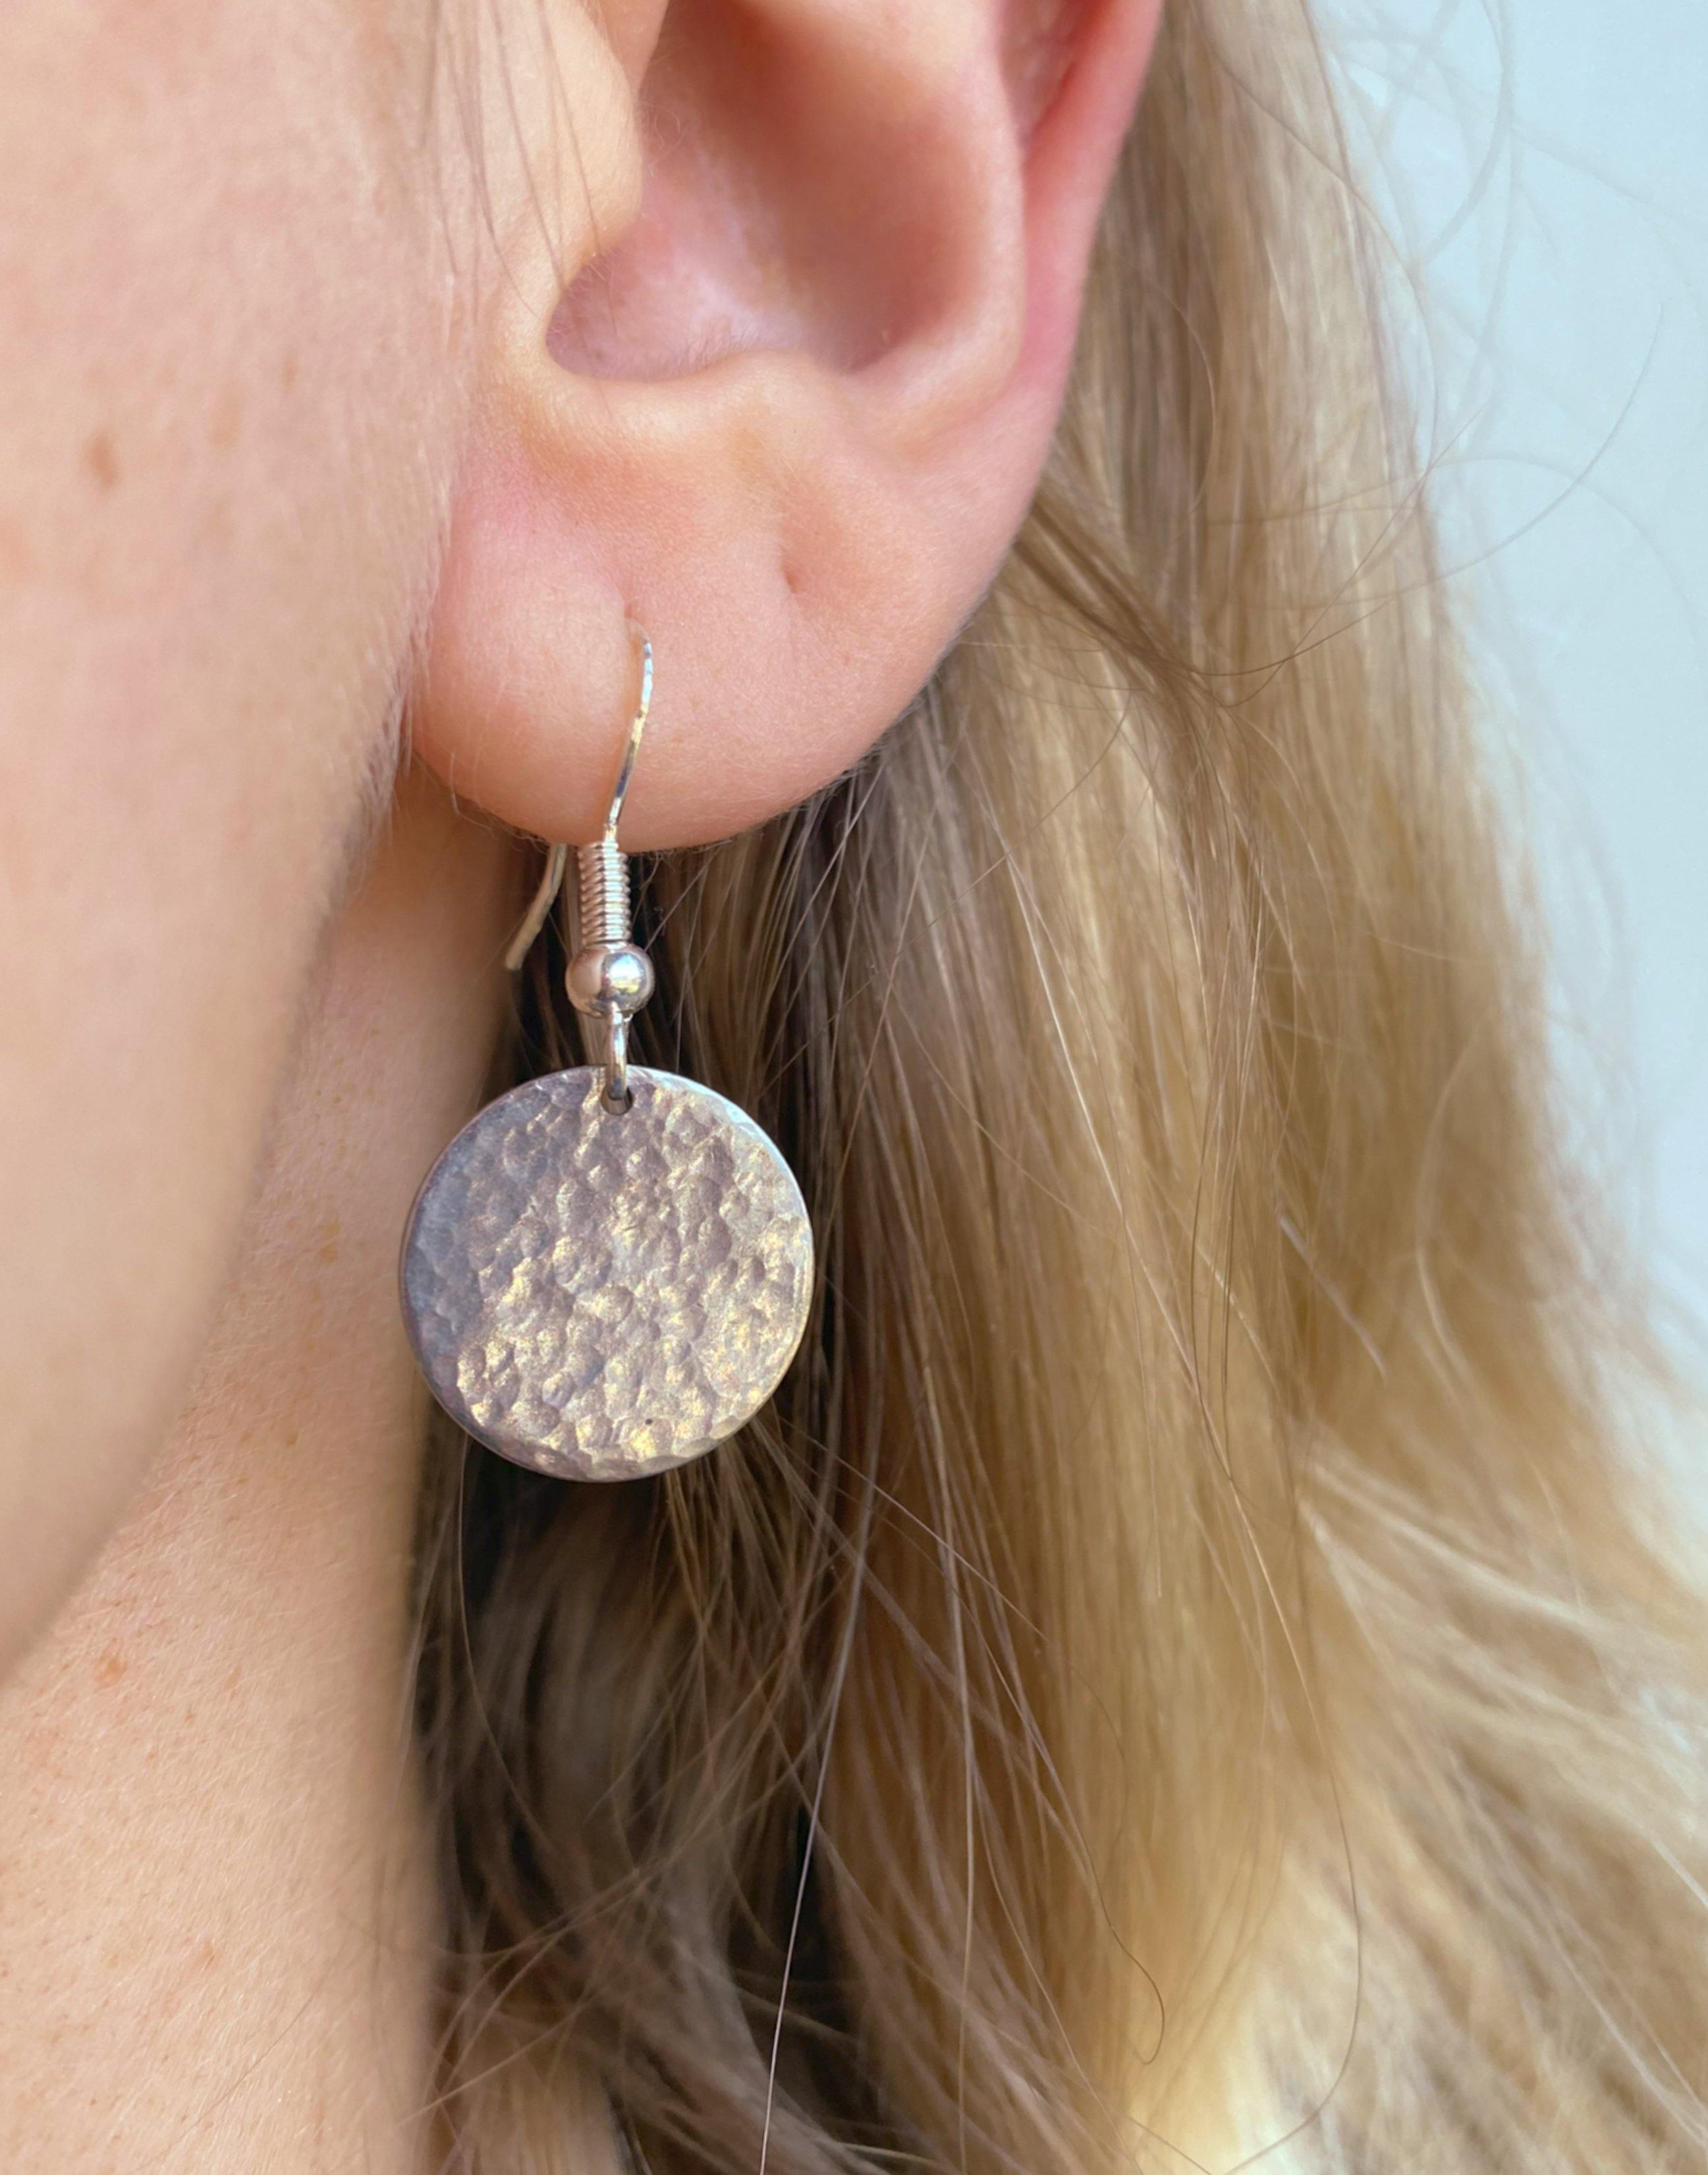 Close up of Silver Dangle Earrings in a womans ear